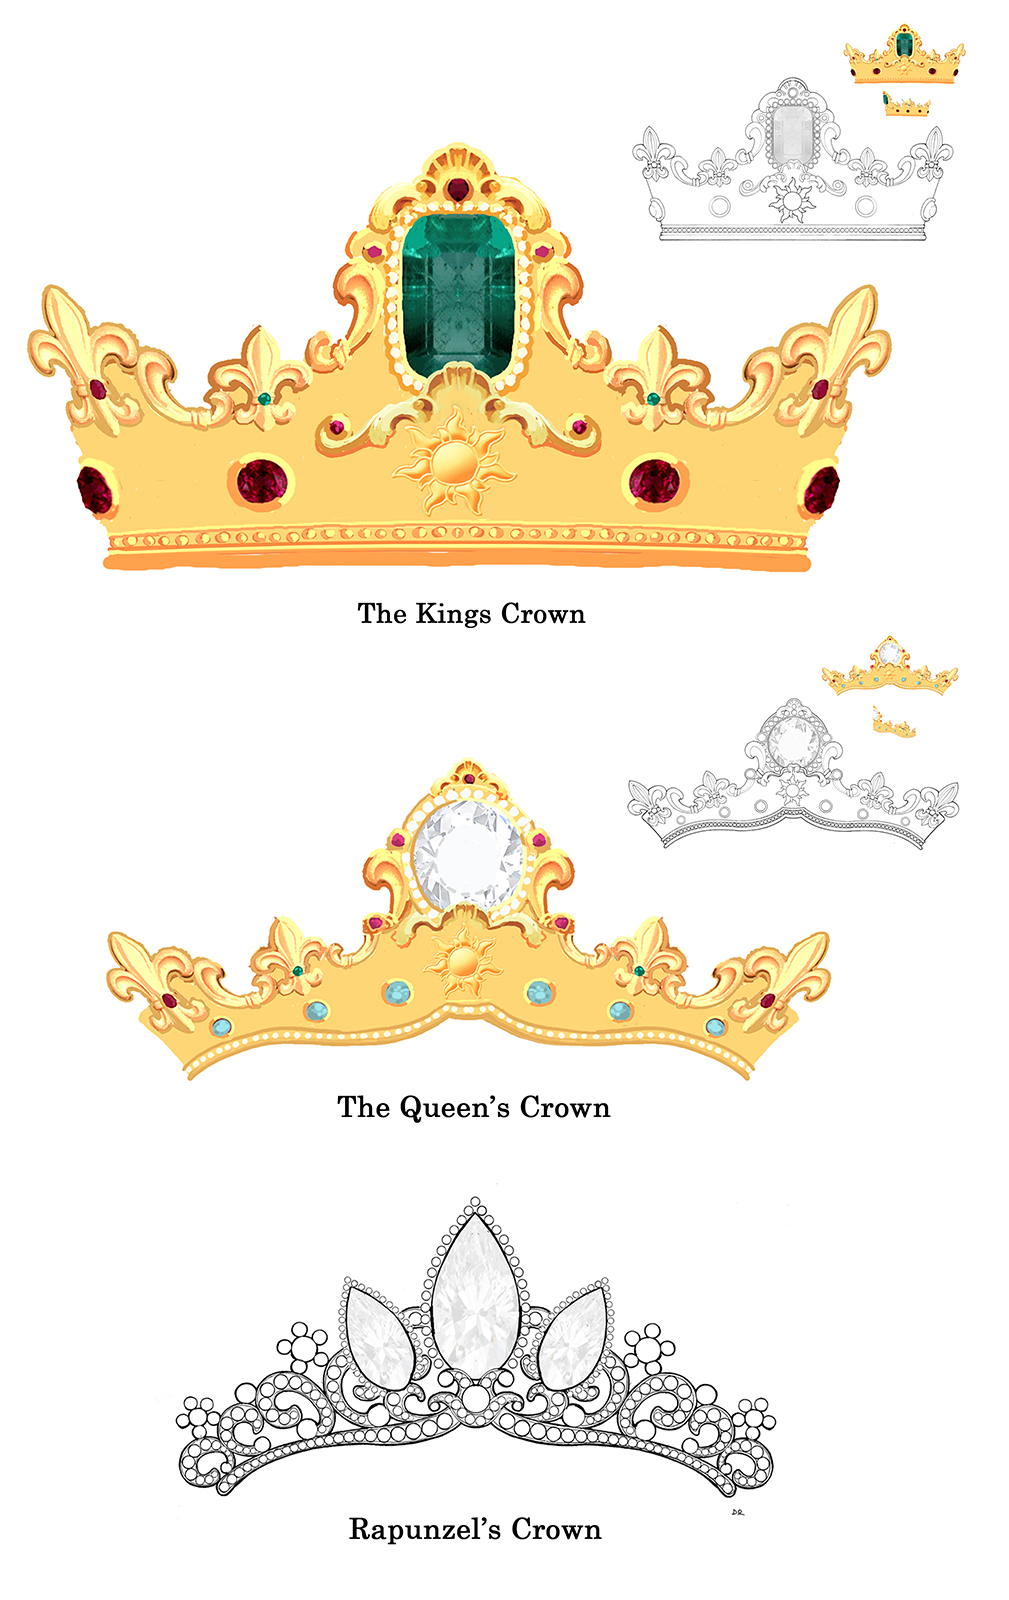 Crown illustrations